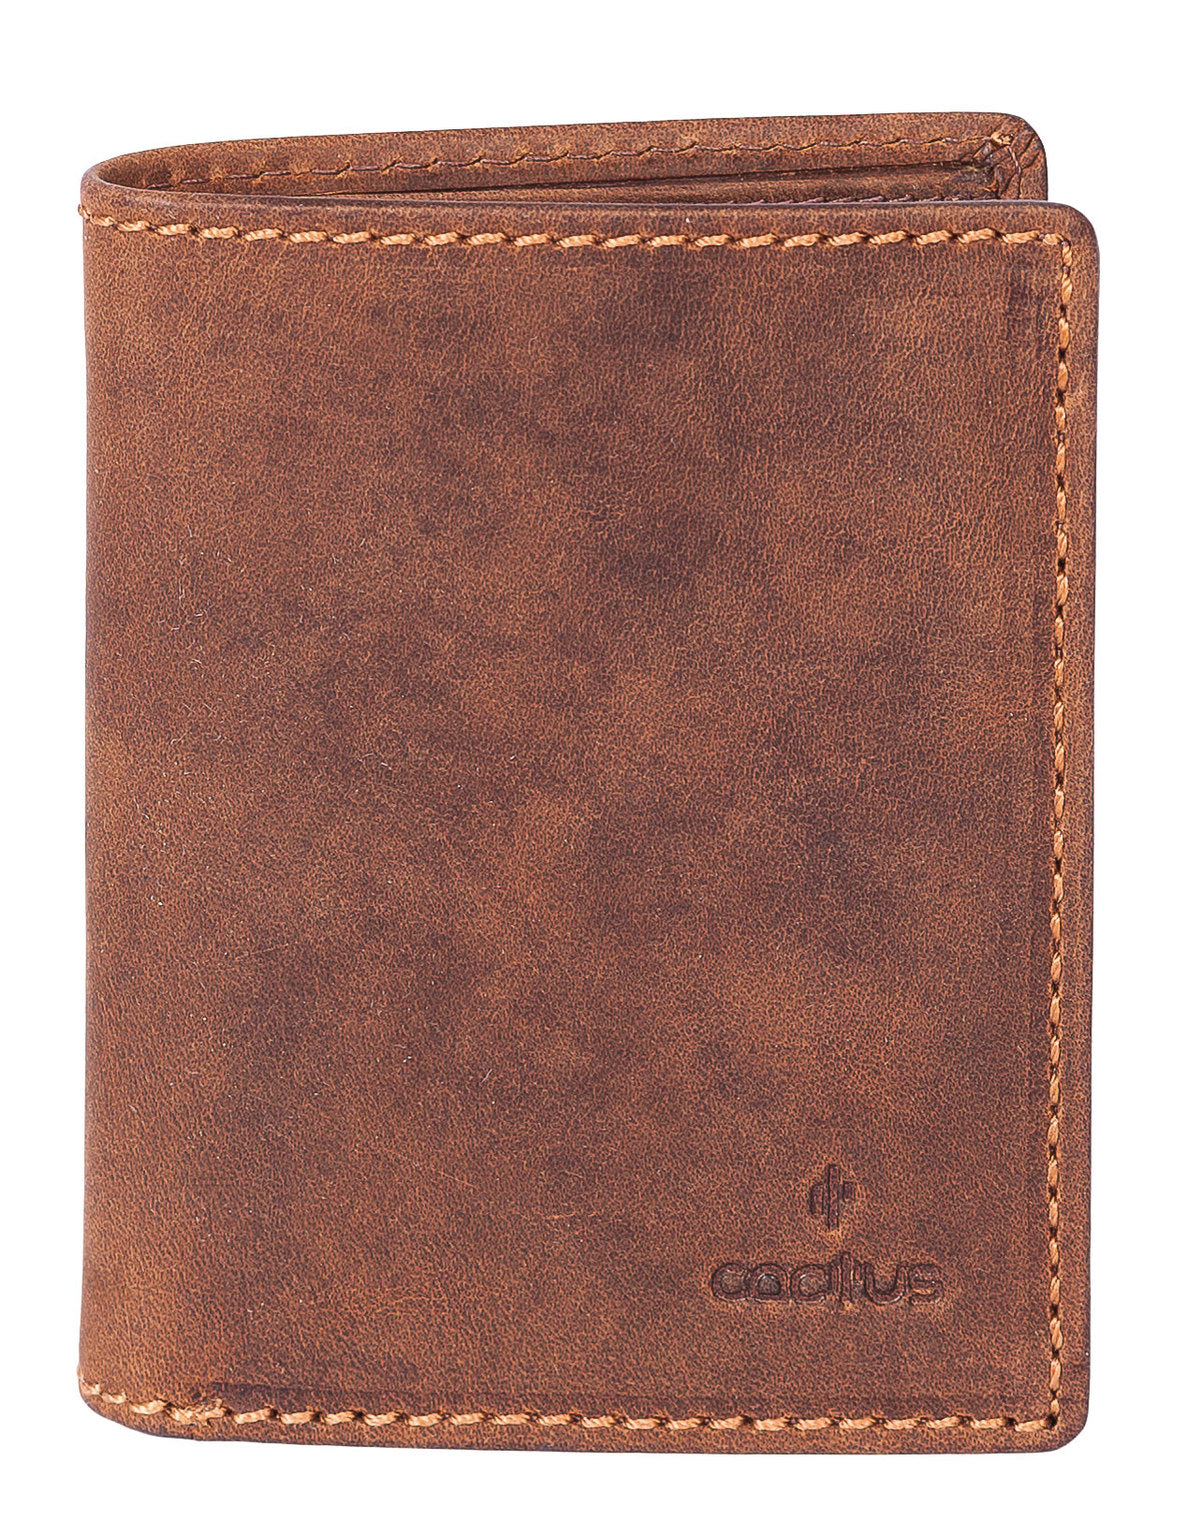 Cactus Leather Zip Around Wallet in Brown